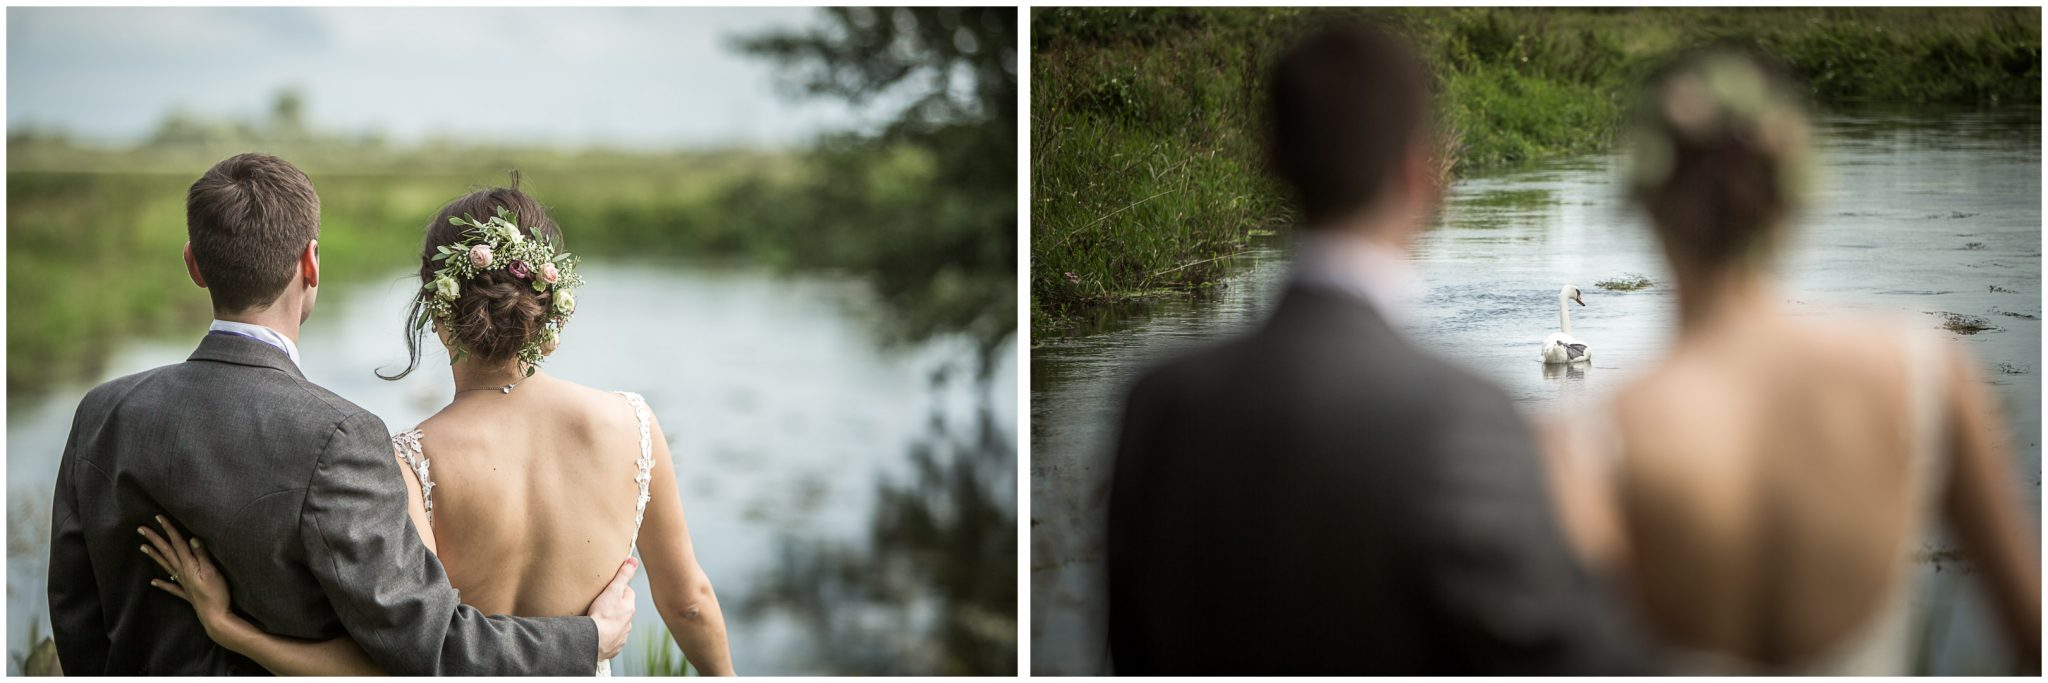 Sopley Mill wedding photography bride and groom look out over river